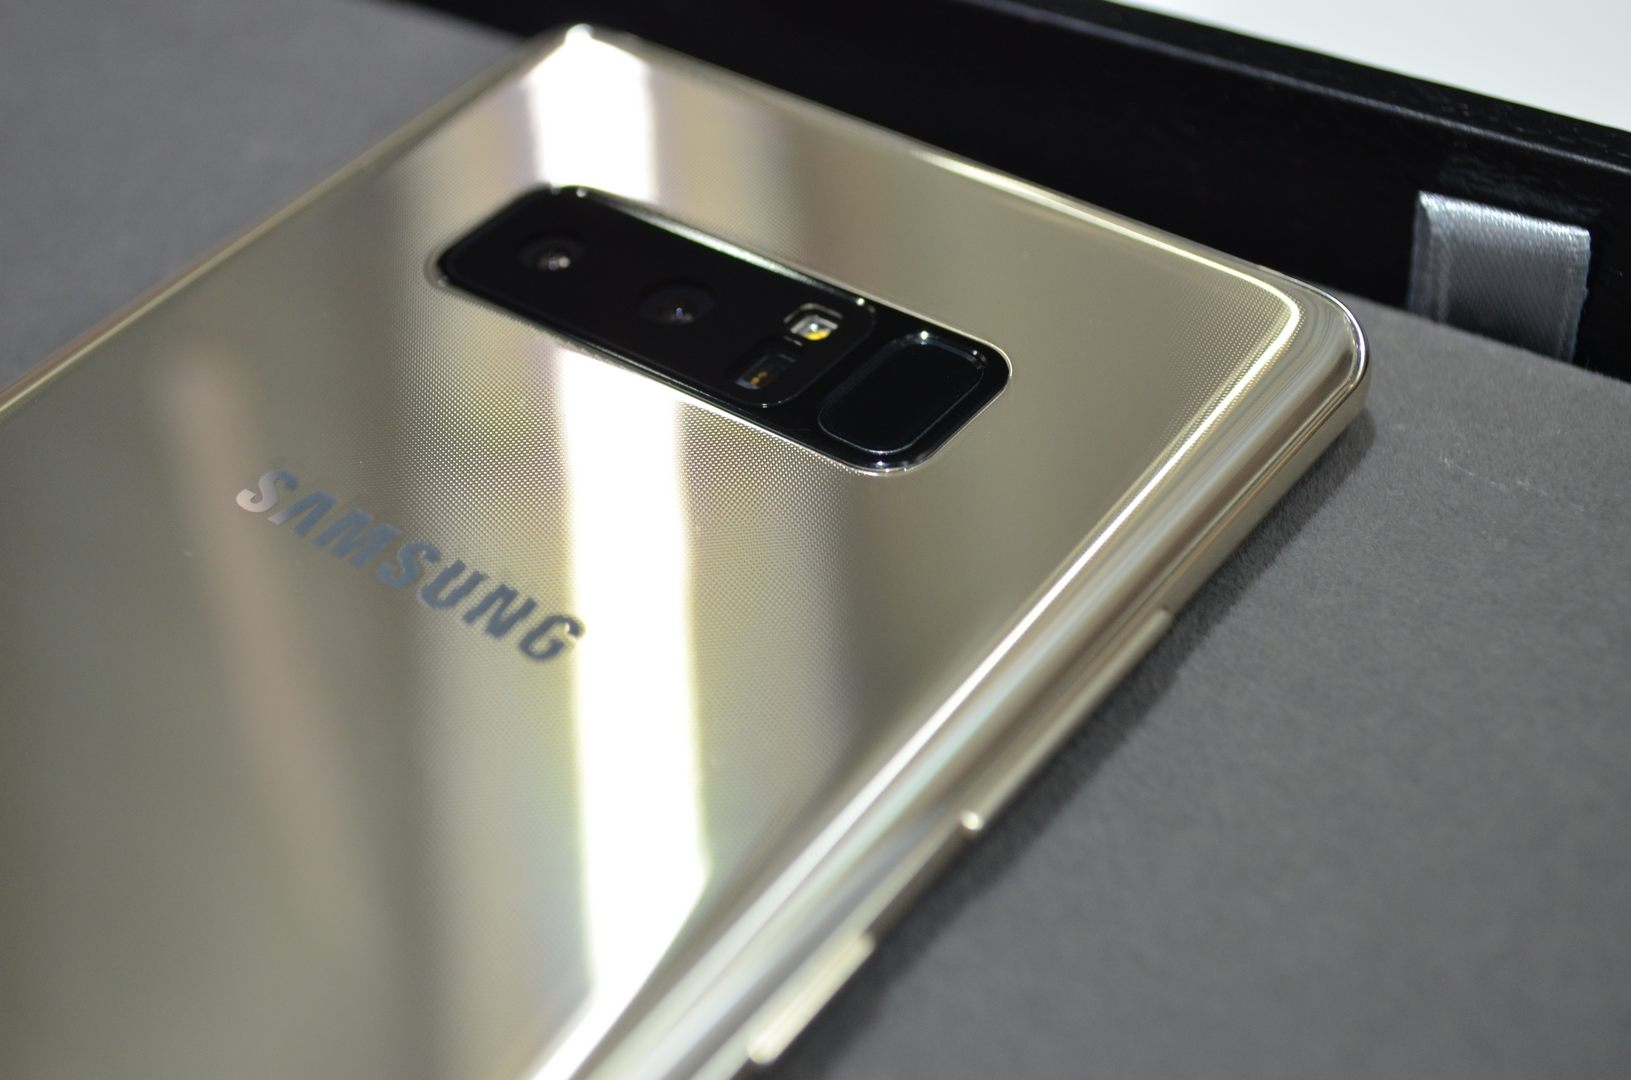 Samsung Galaxy Note 8 Hands on Review: First Impressions About